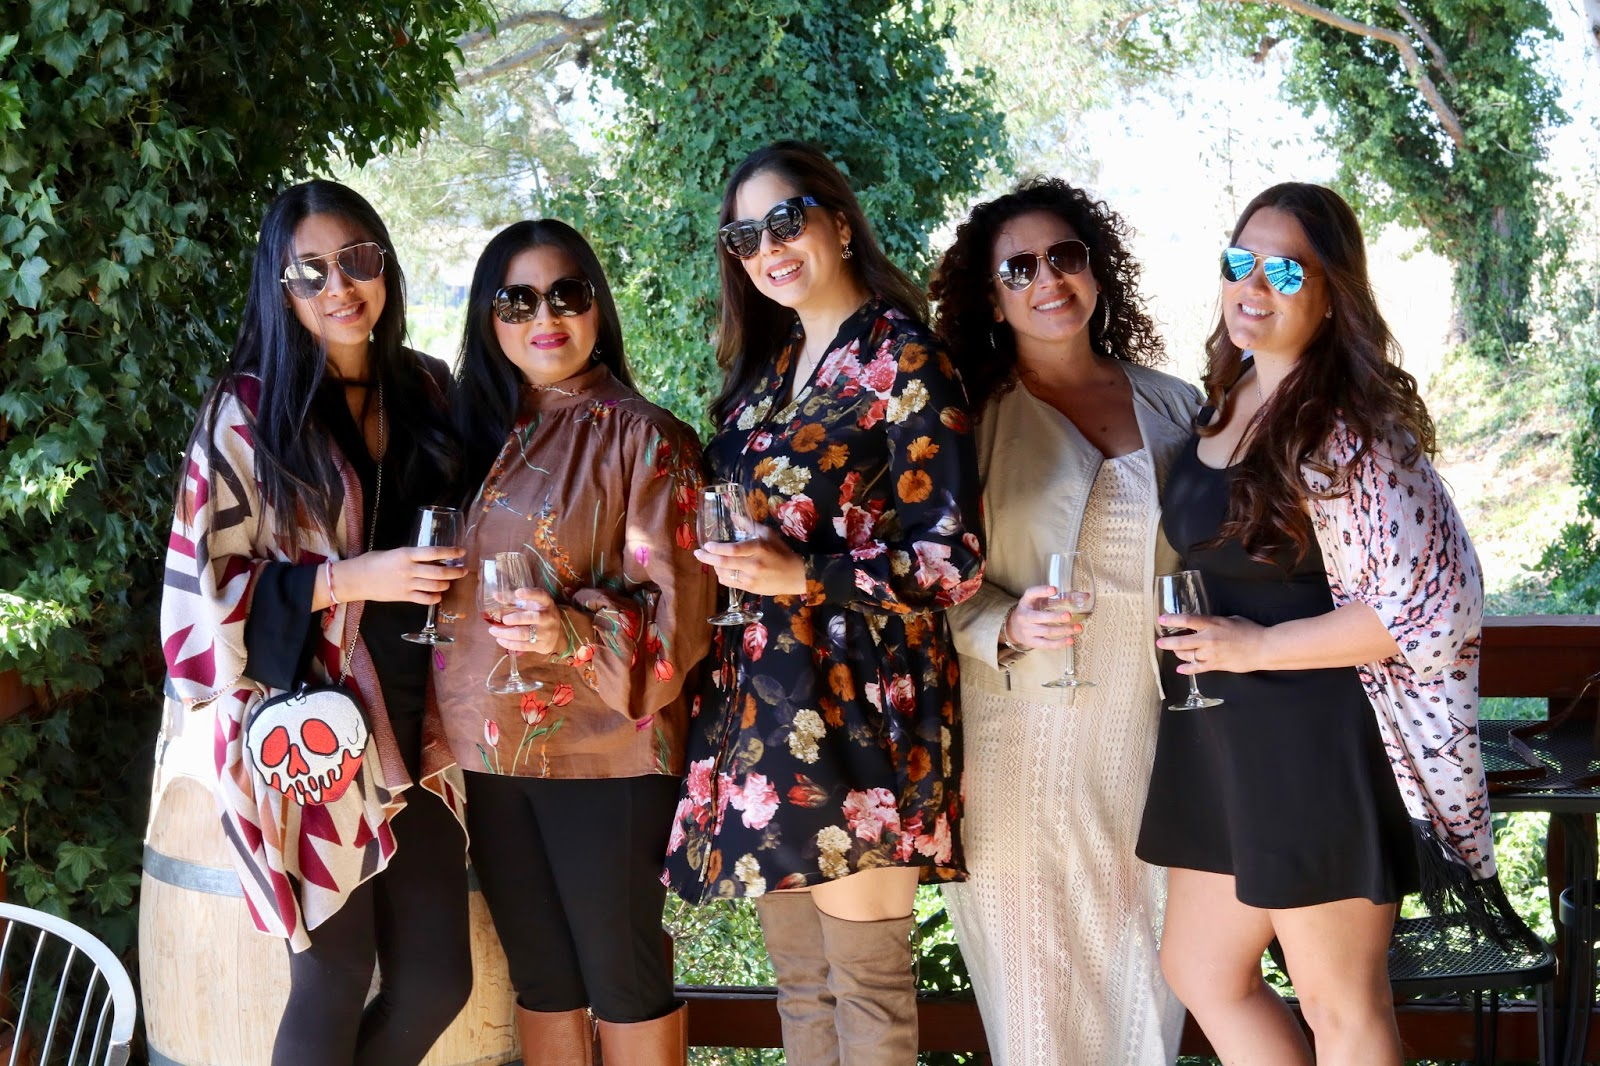 wine tour in Temecula, what to wear winetasting, stylish winetasting outfit